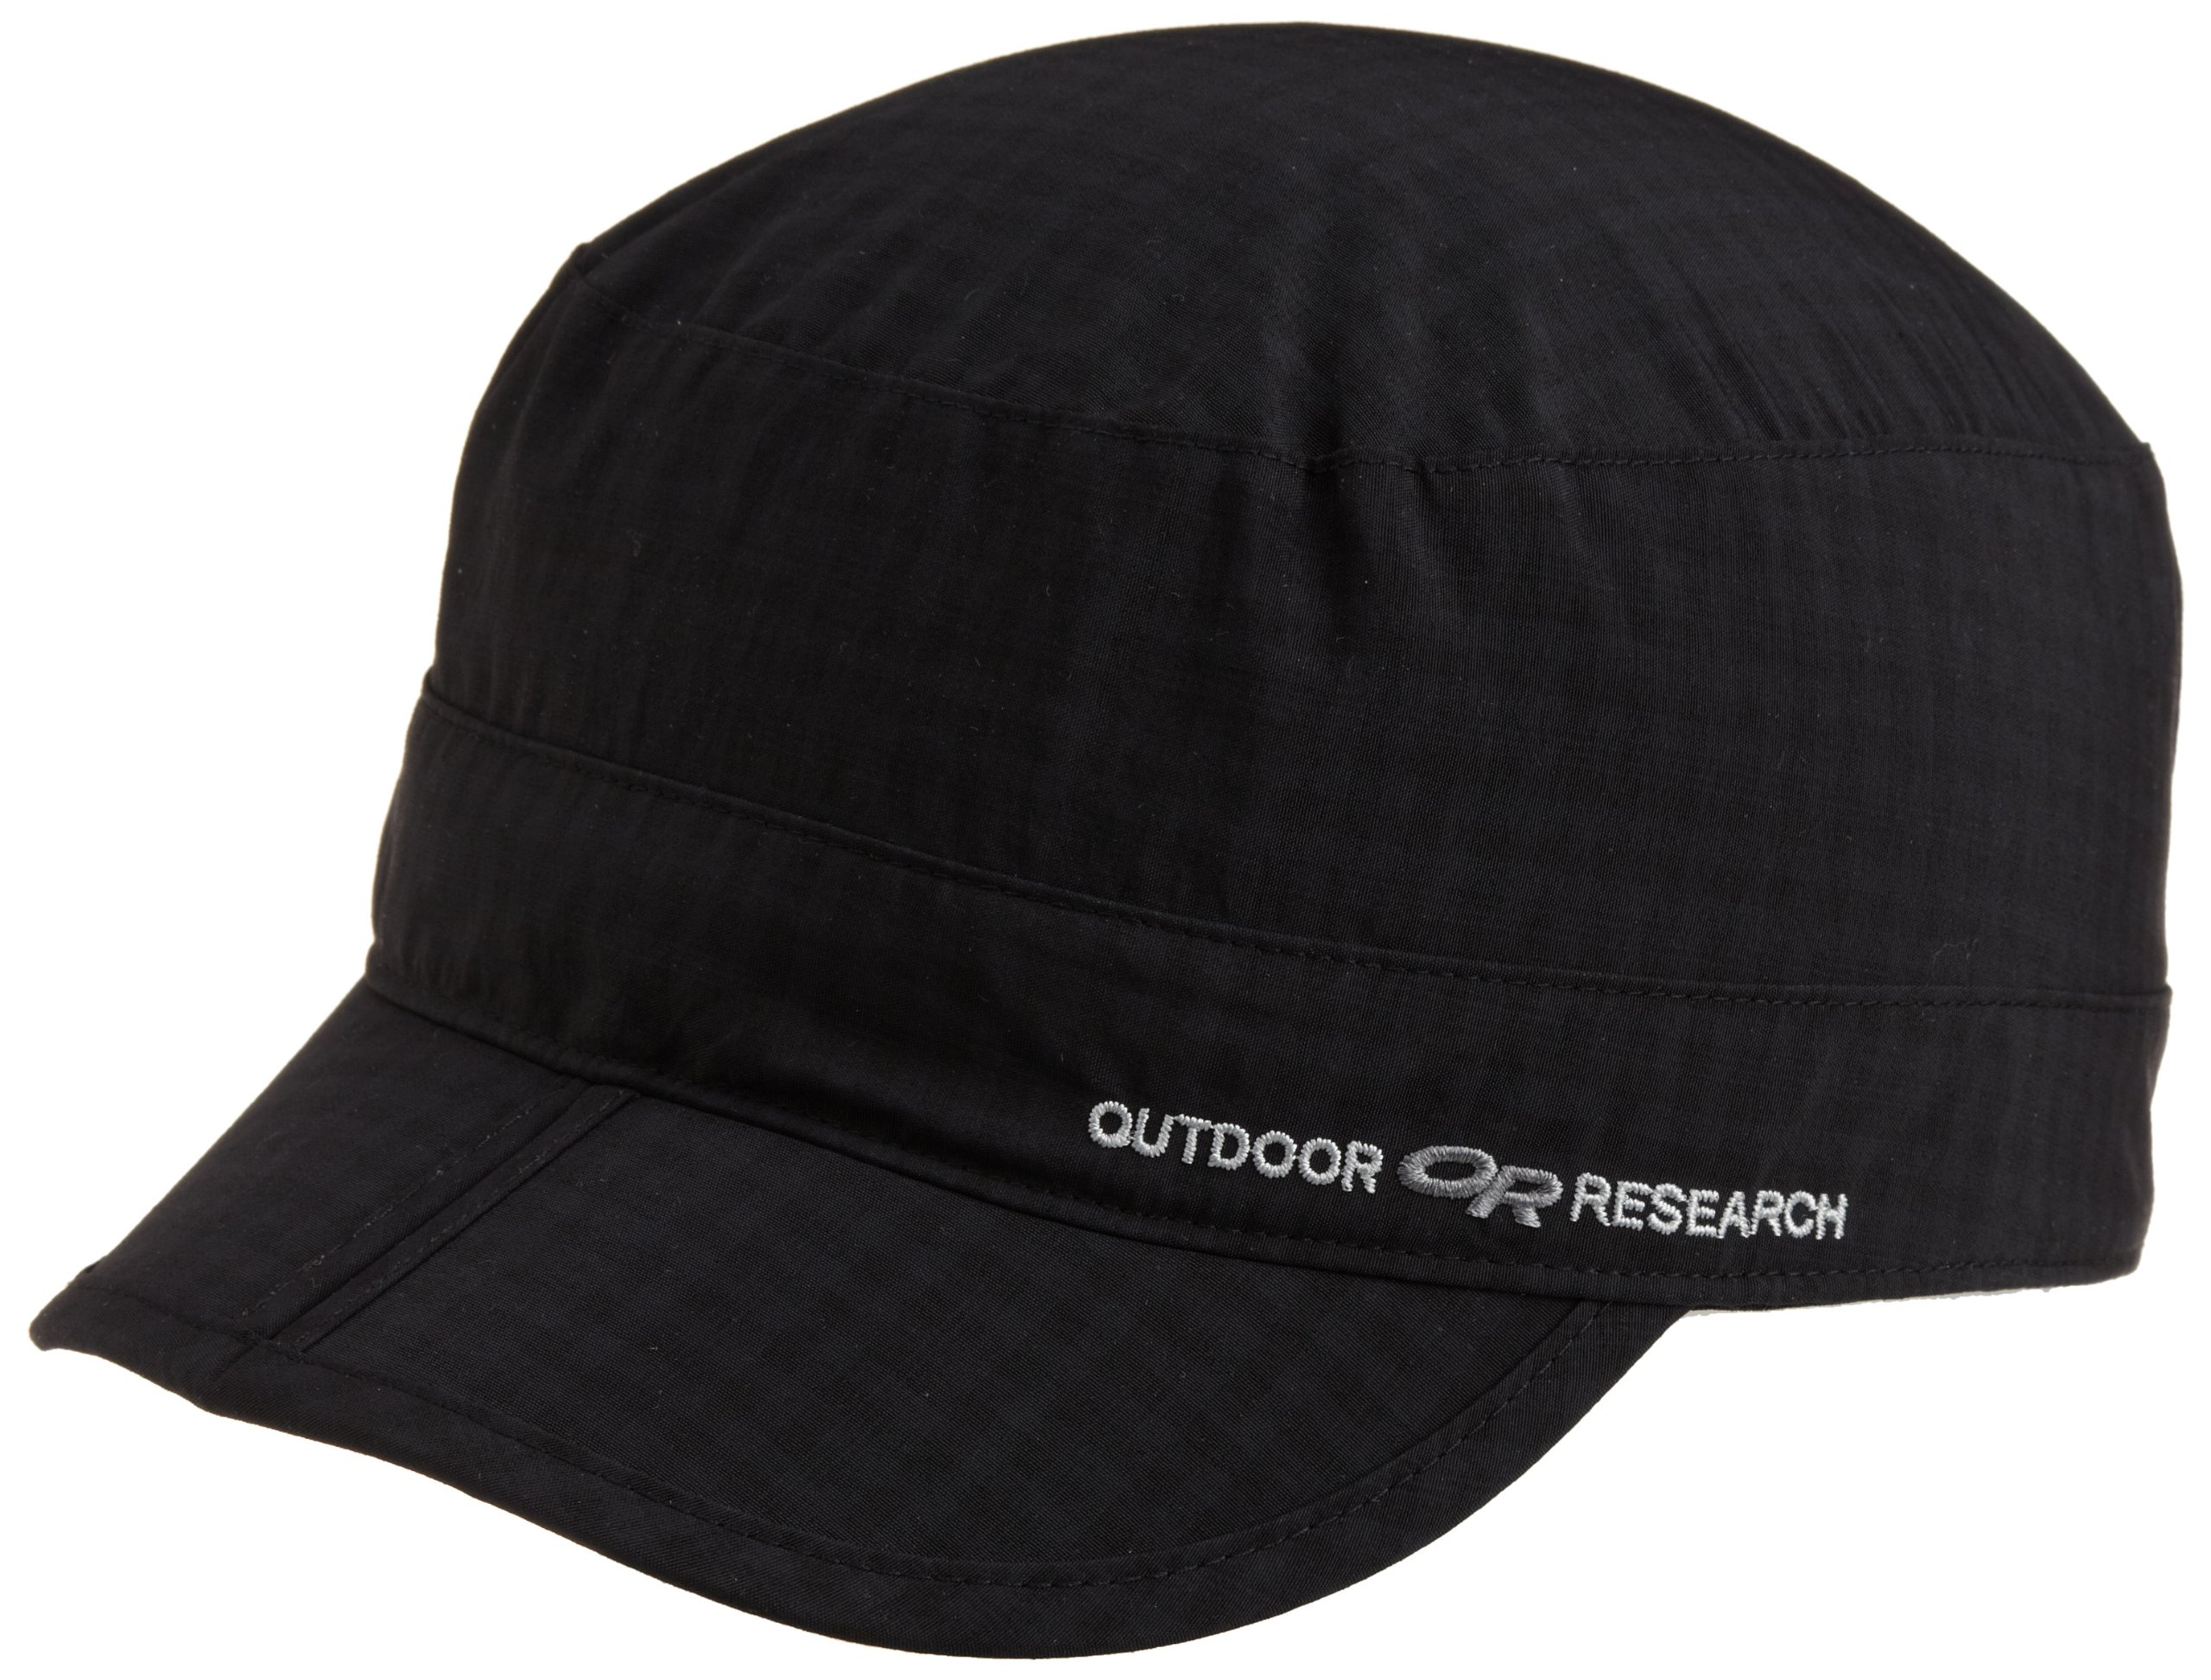 Outdoor Research Radar Pocket Cap, Black Check, Large by Outdoor Research (Image #3)